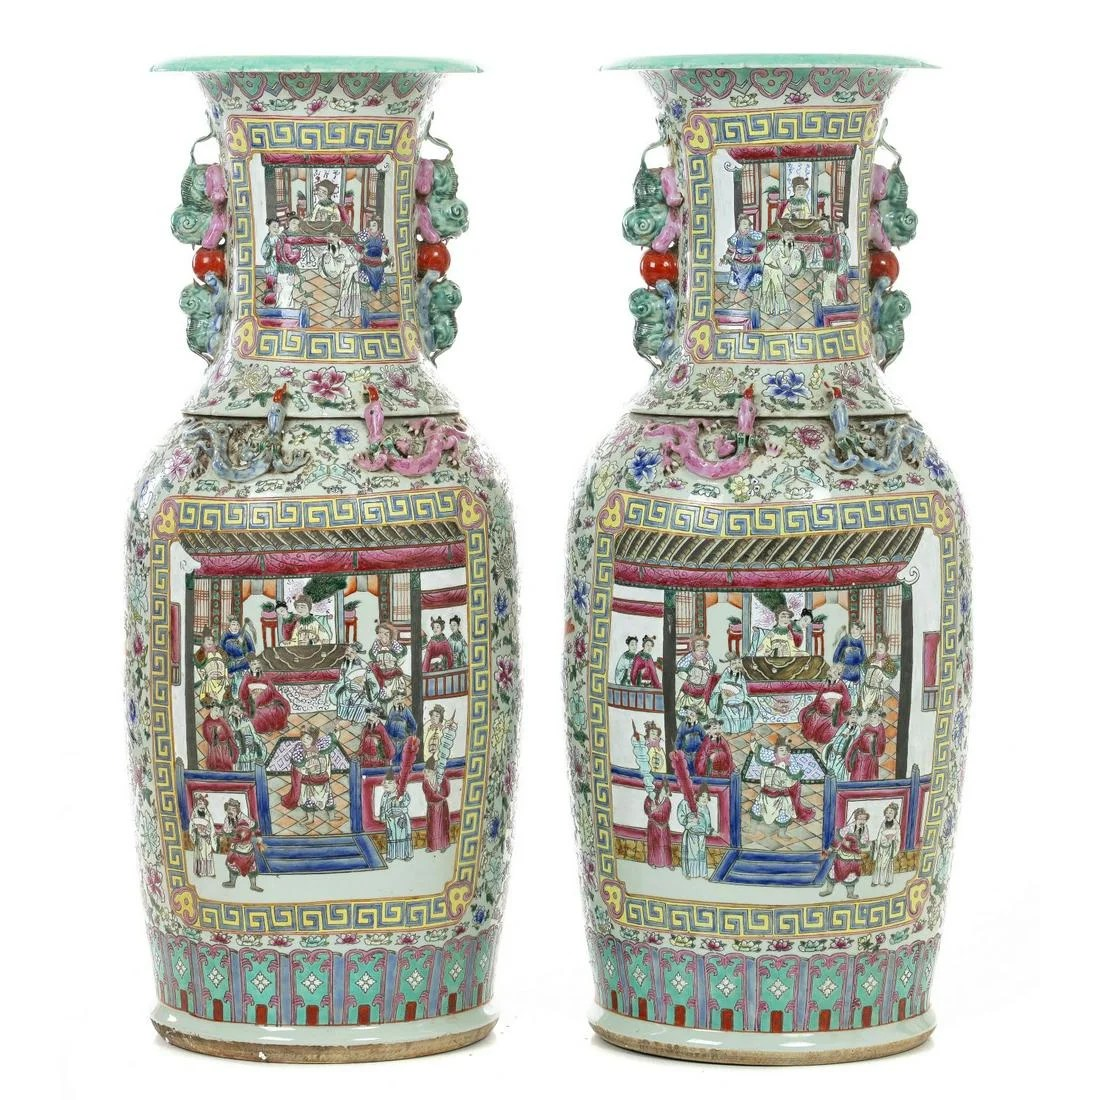 Pair of large porcelain vases from China